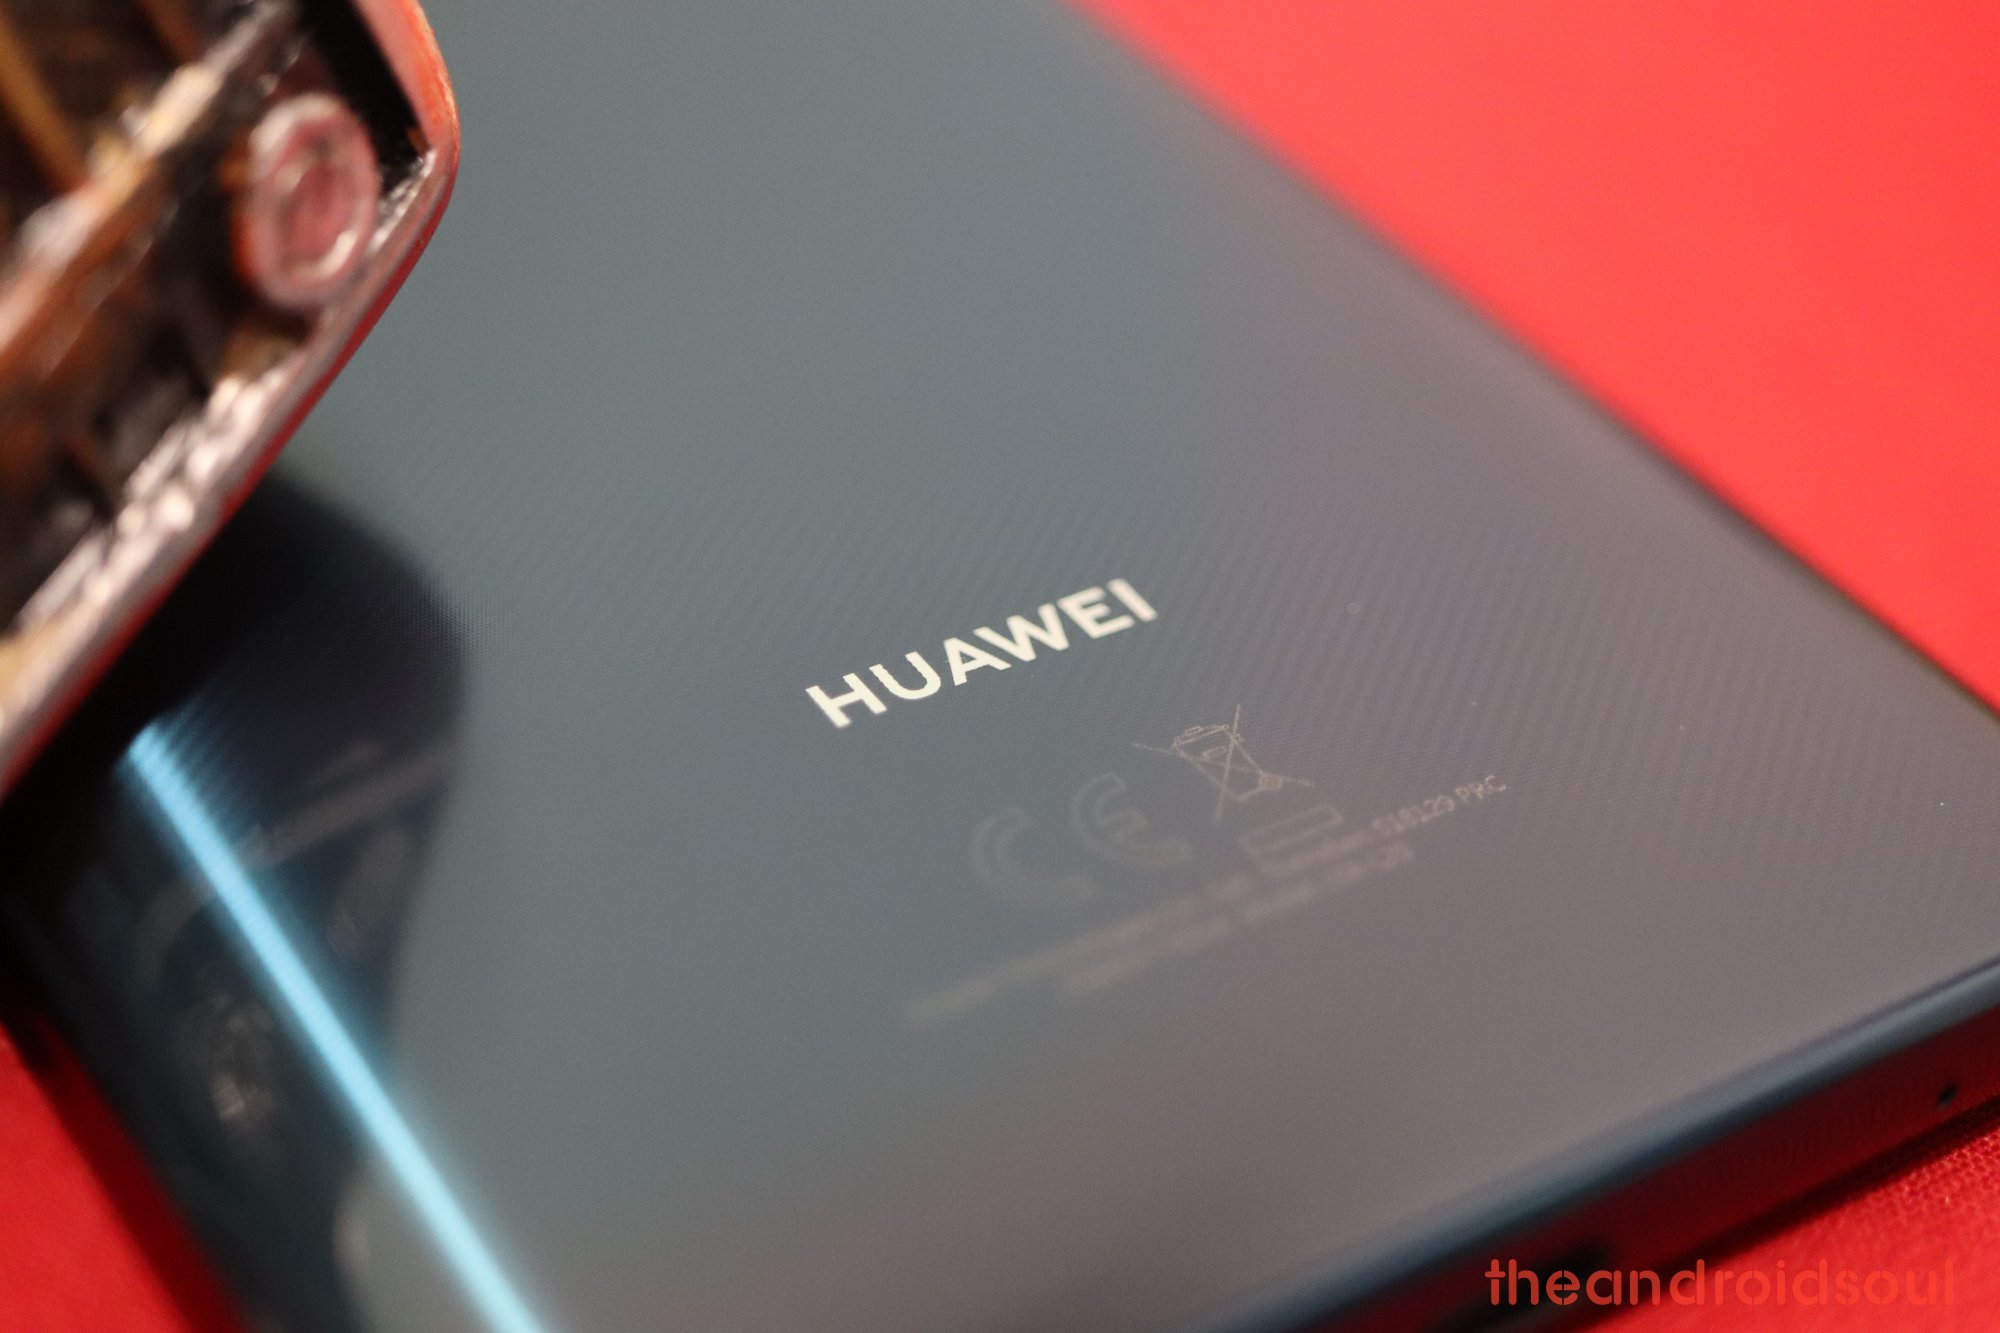 Existing Huawei phones unaffected by restrictions to access Google